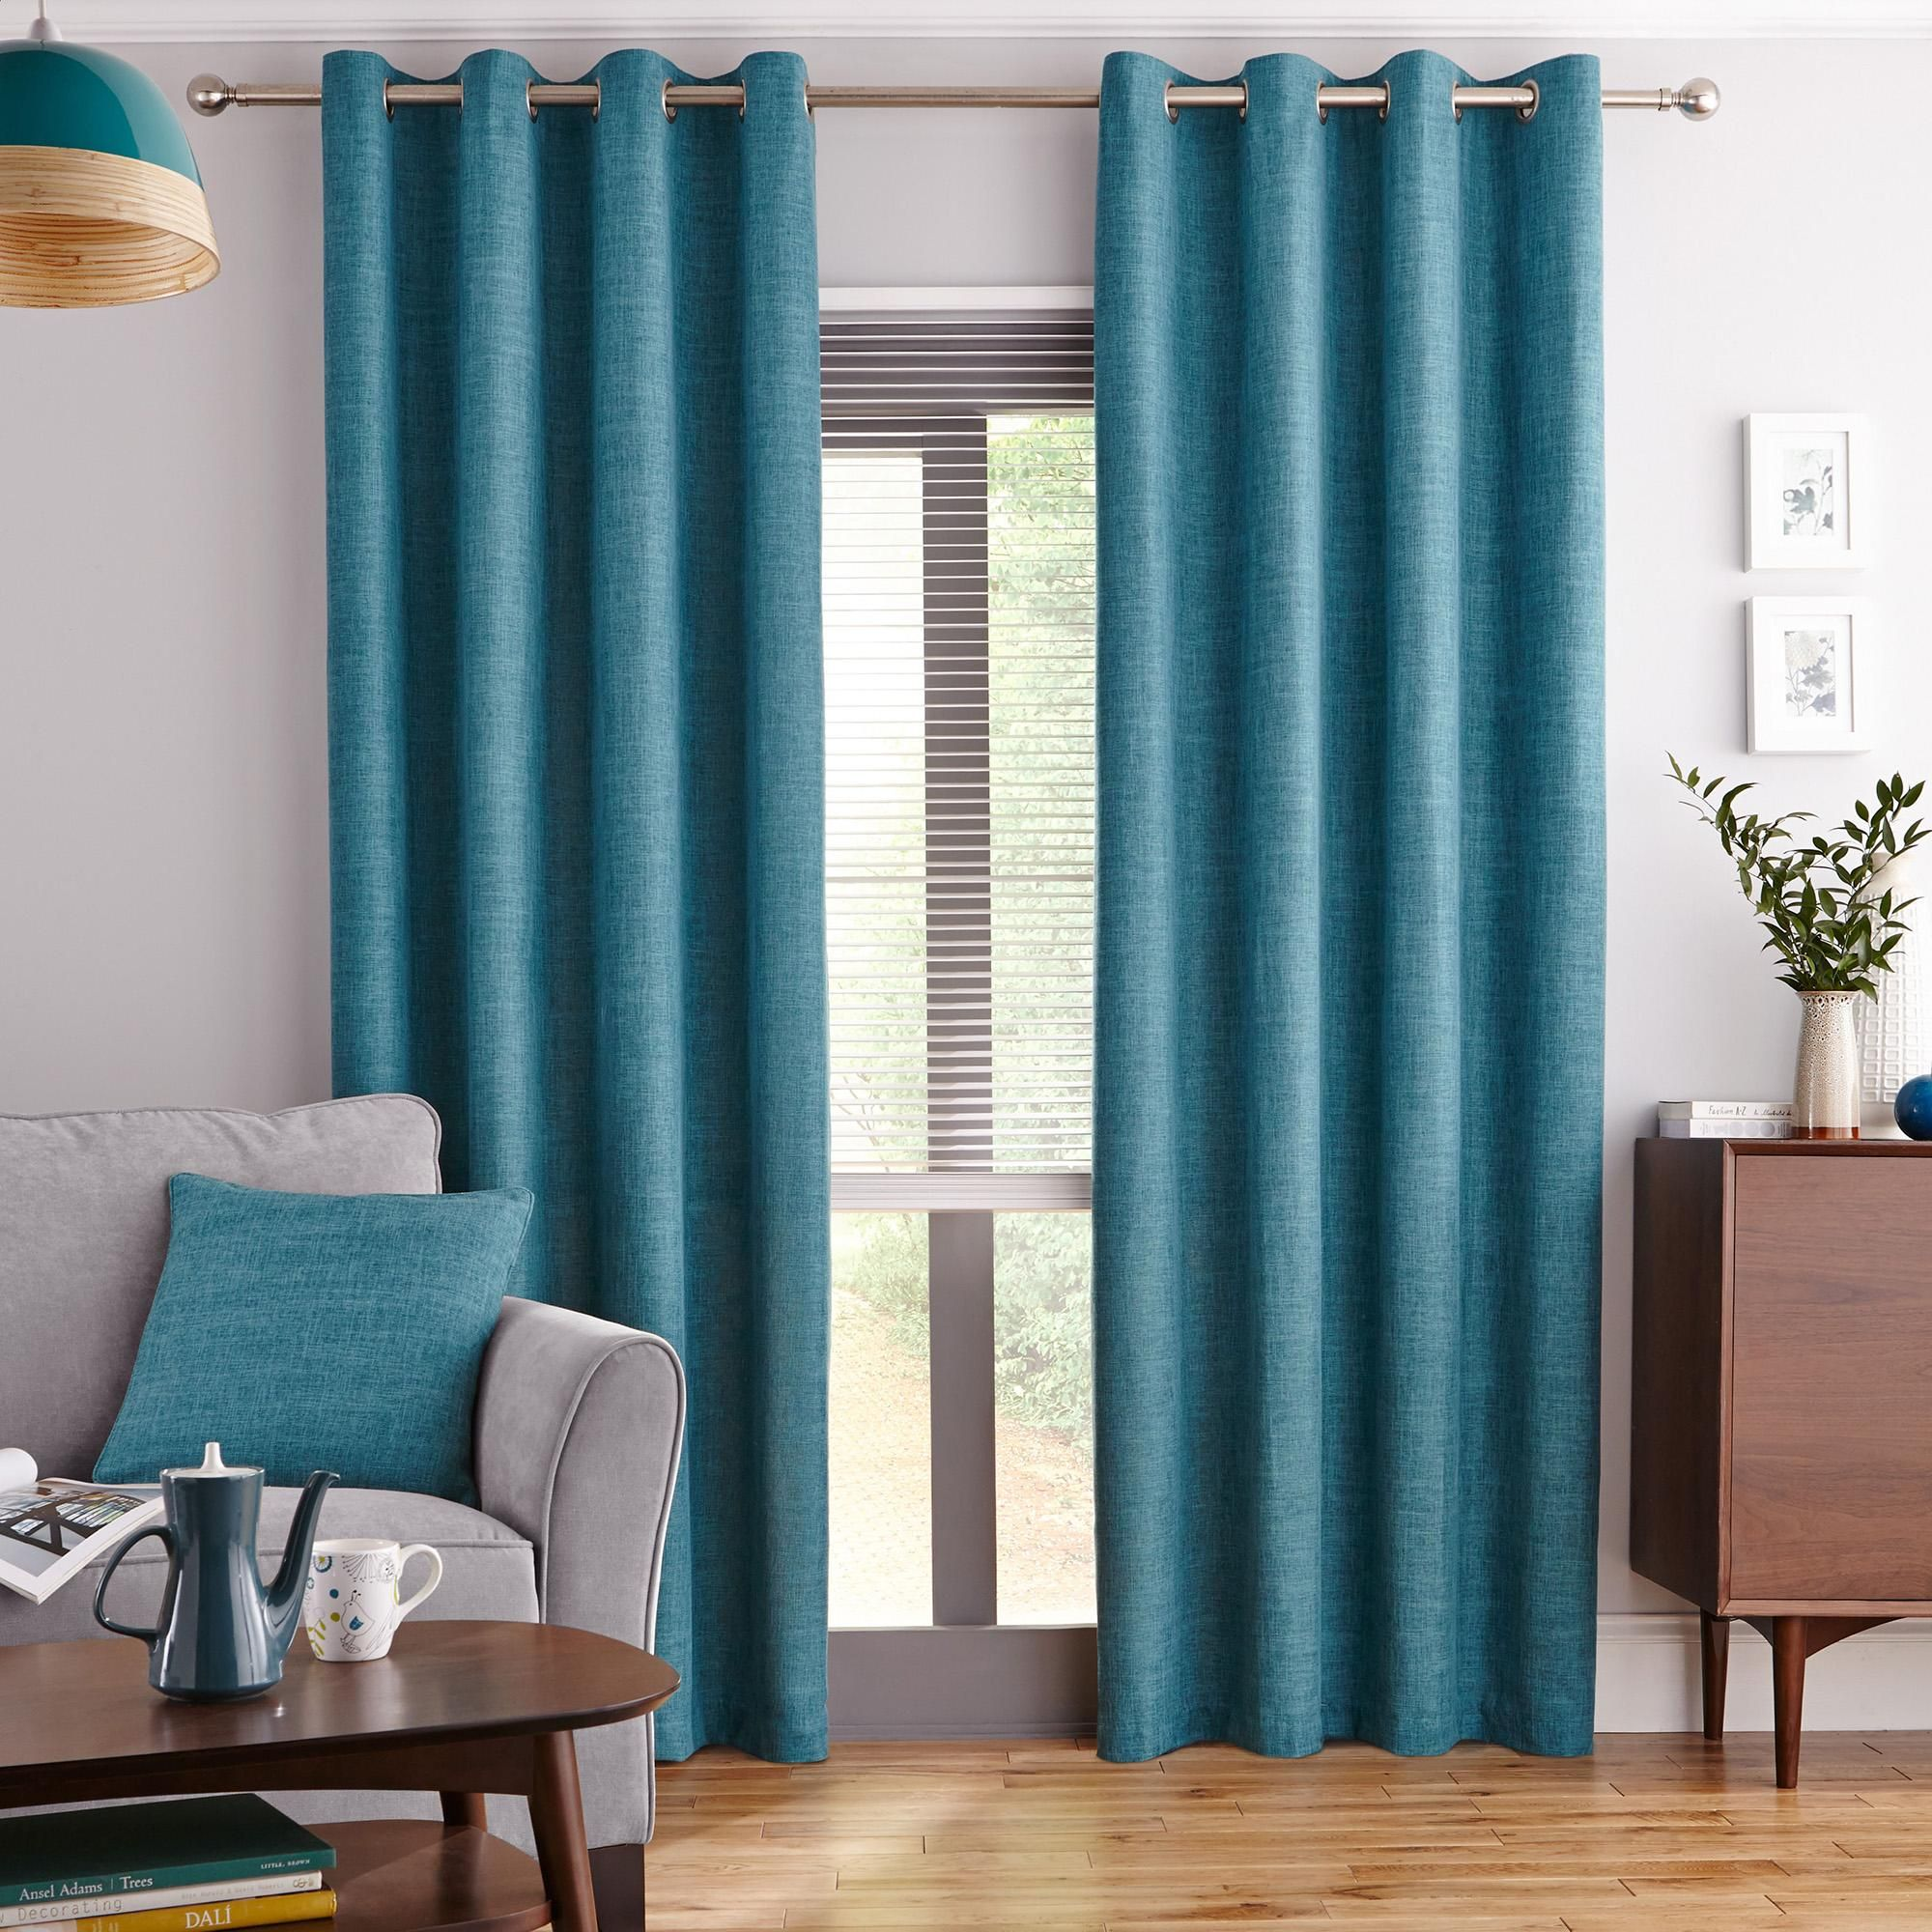 Vermont teal lined eyelet curtains dunelm bedroom curtain ideas